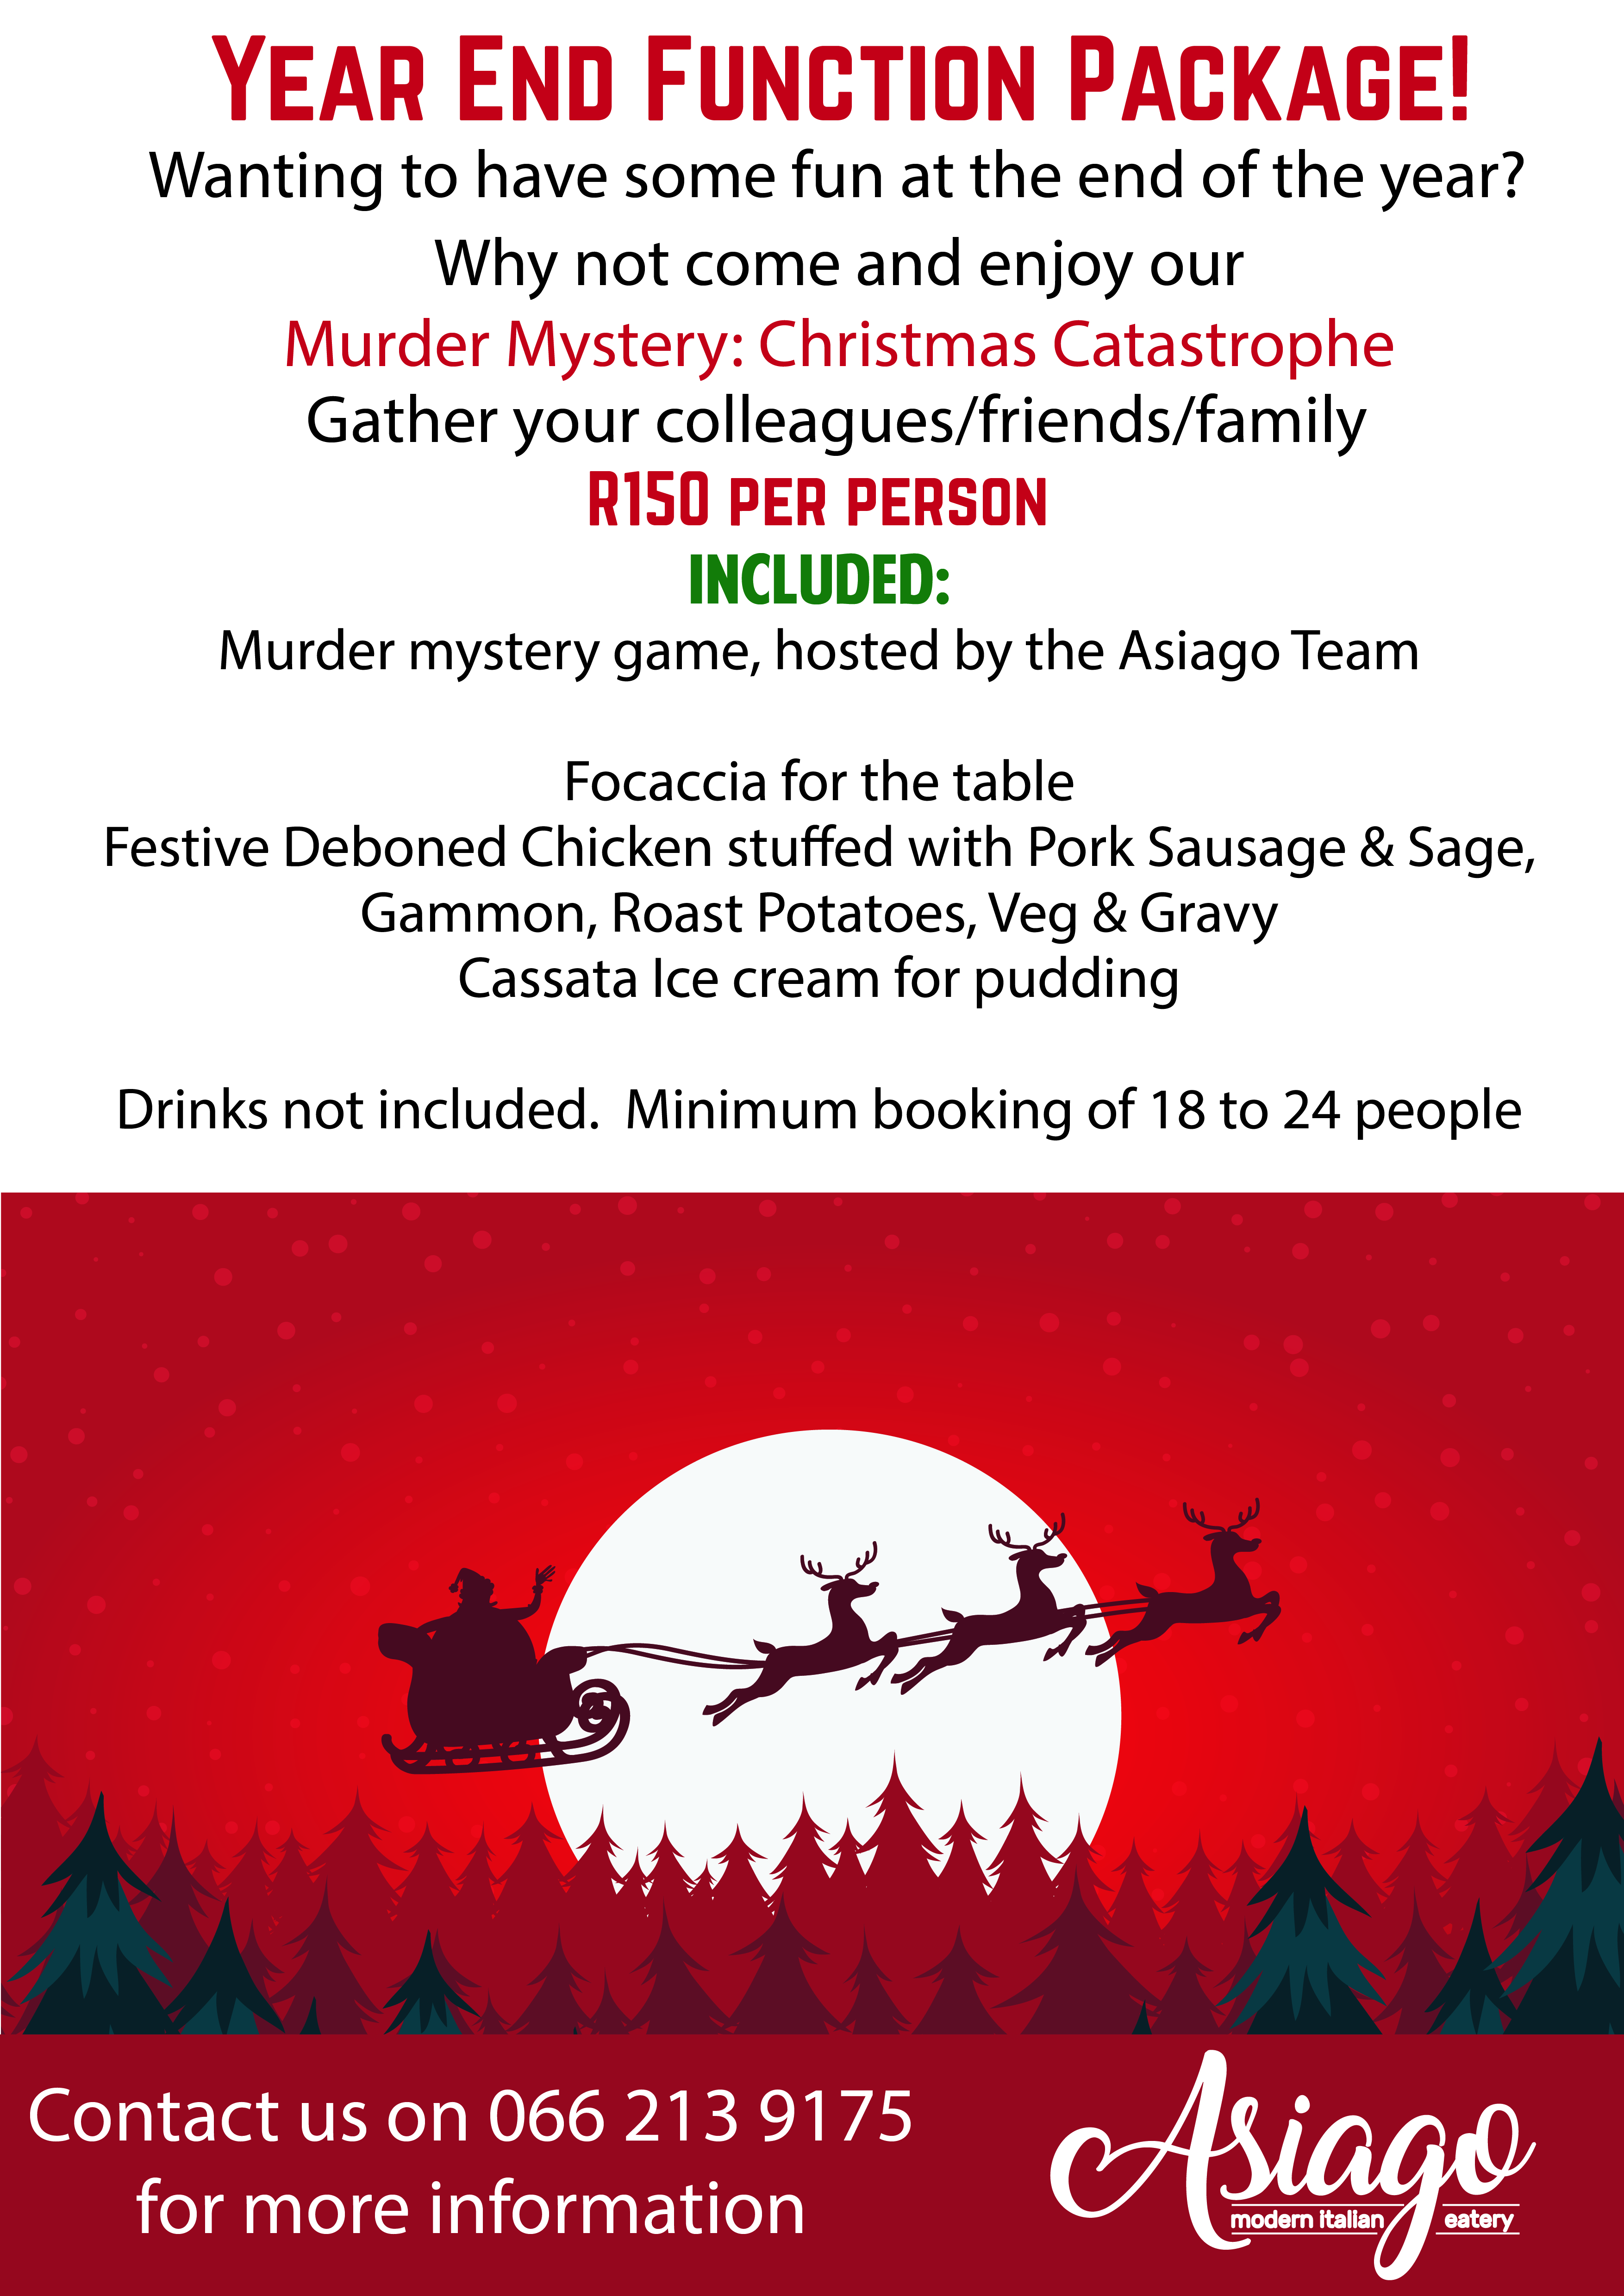 Year End Function_Murder Mystery Package